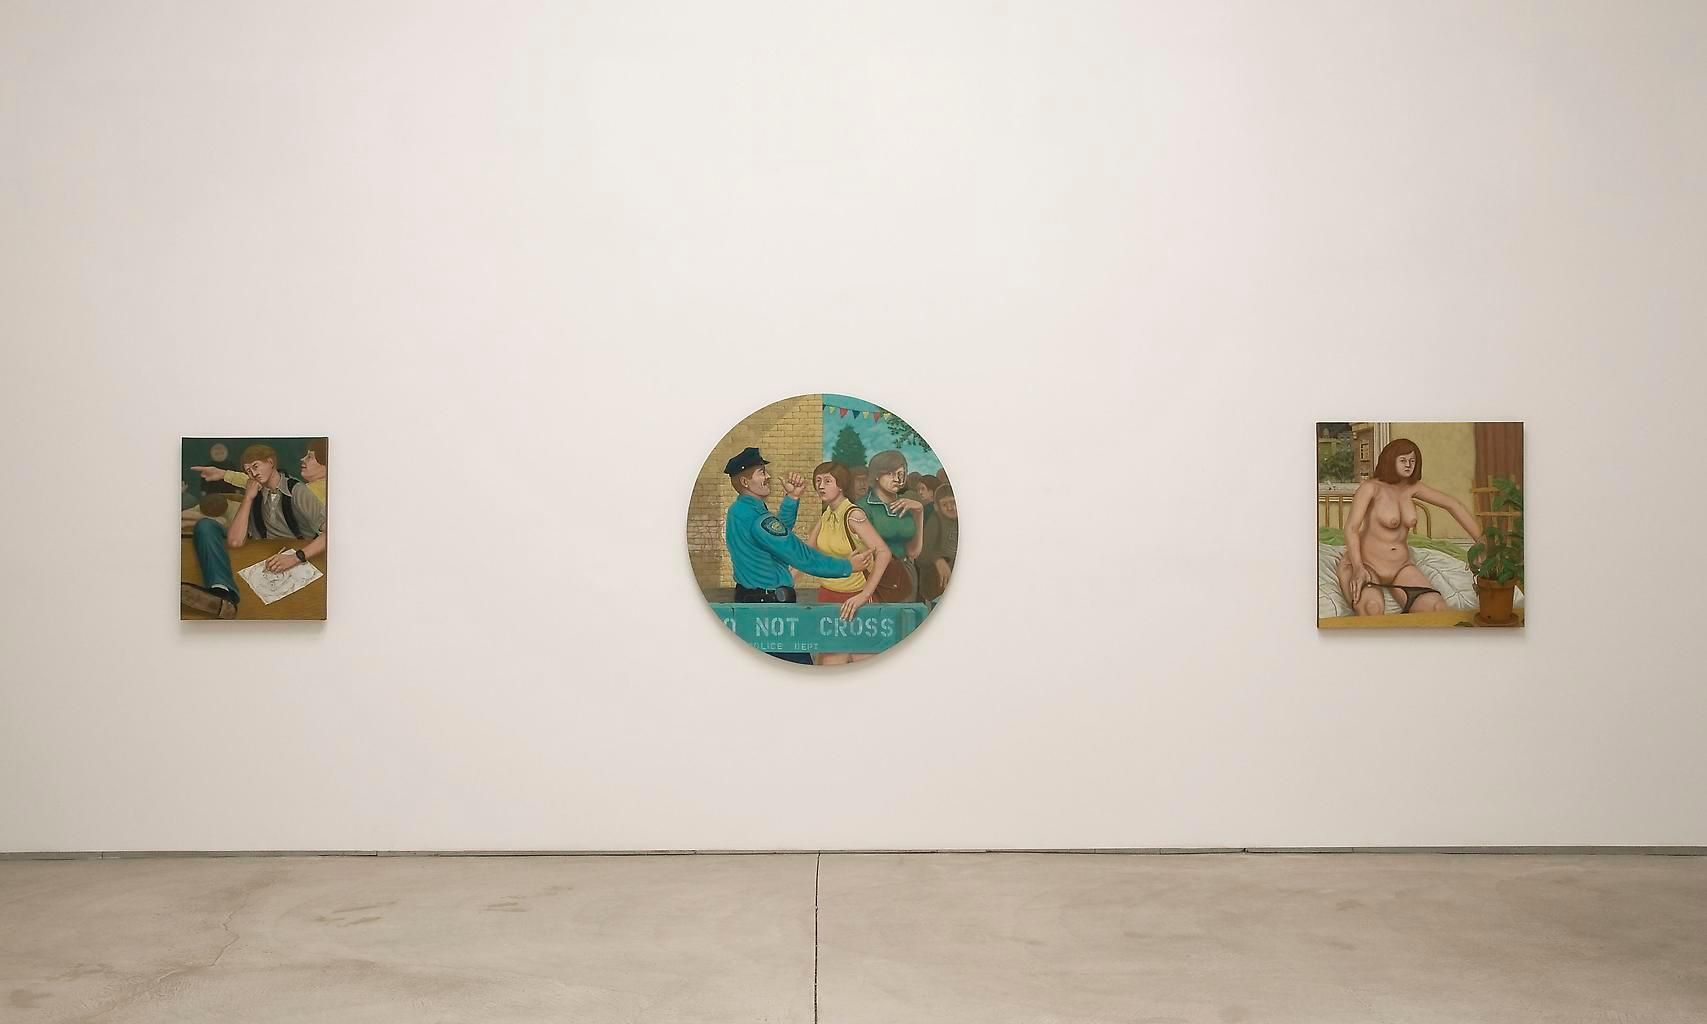 Installation view, Michael Cline, Fifth Column, Marc Jancou, New York, September 10 - October 30, 2009